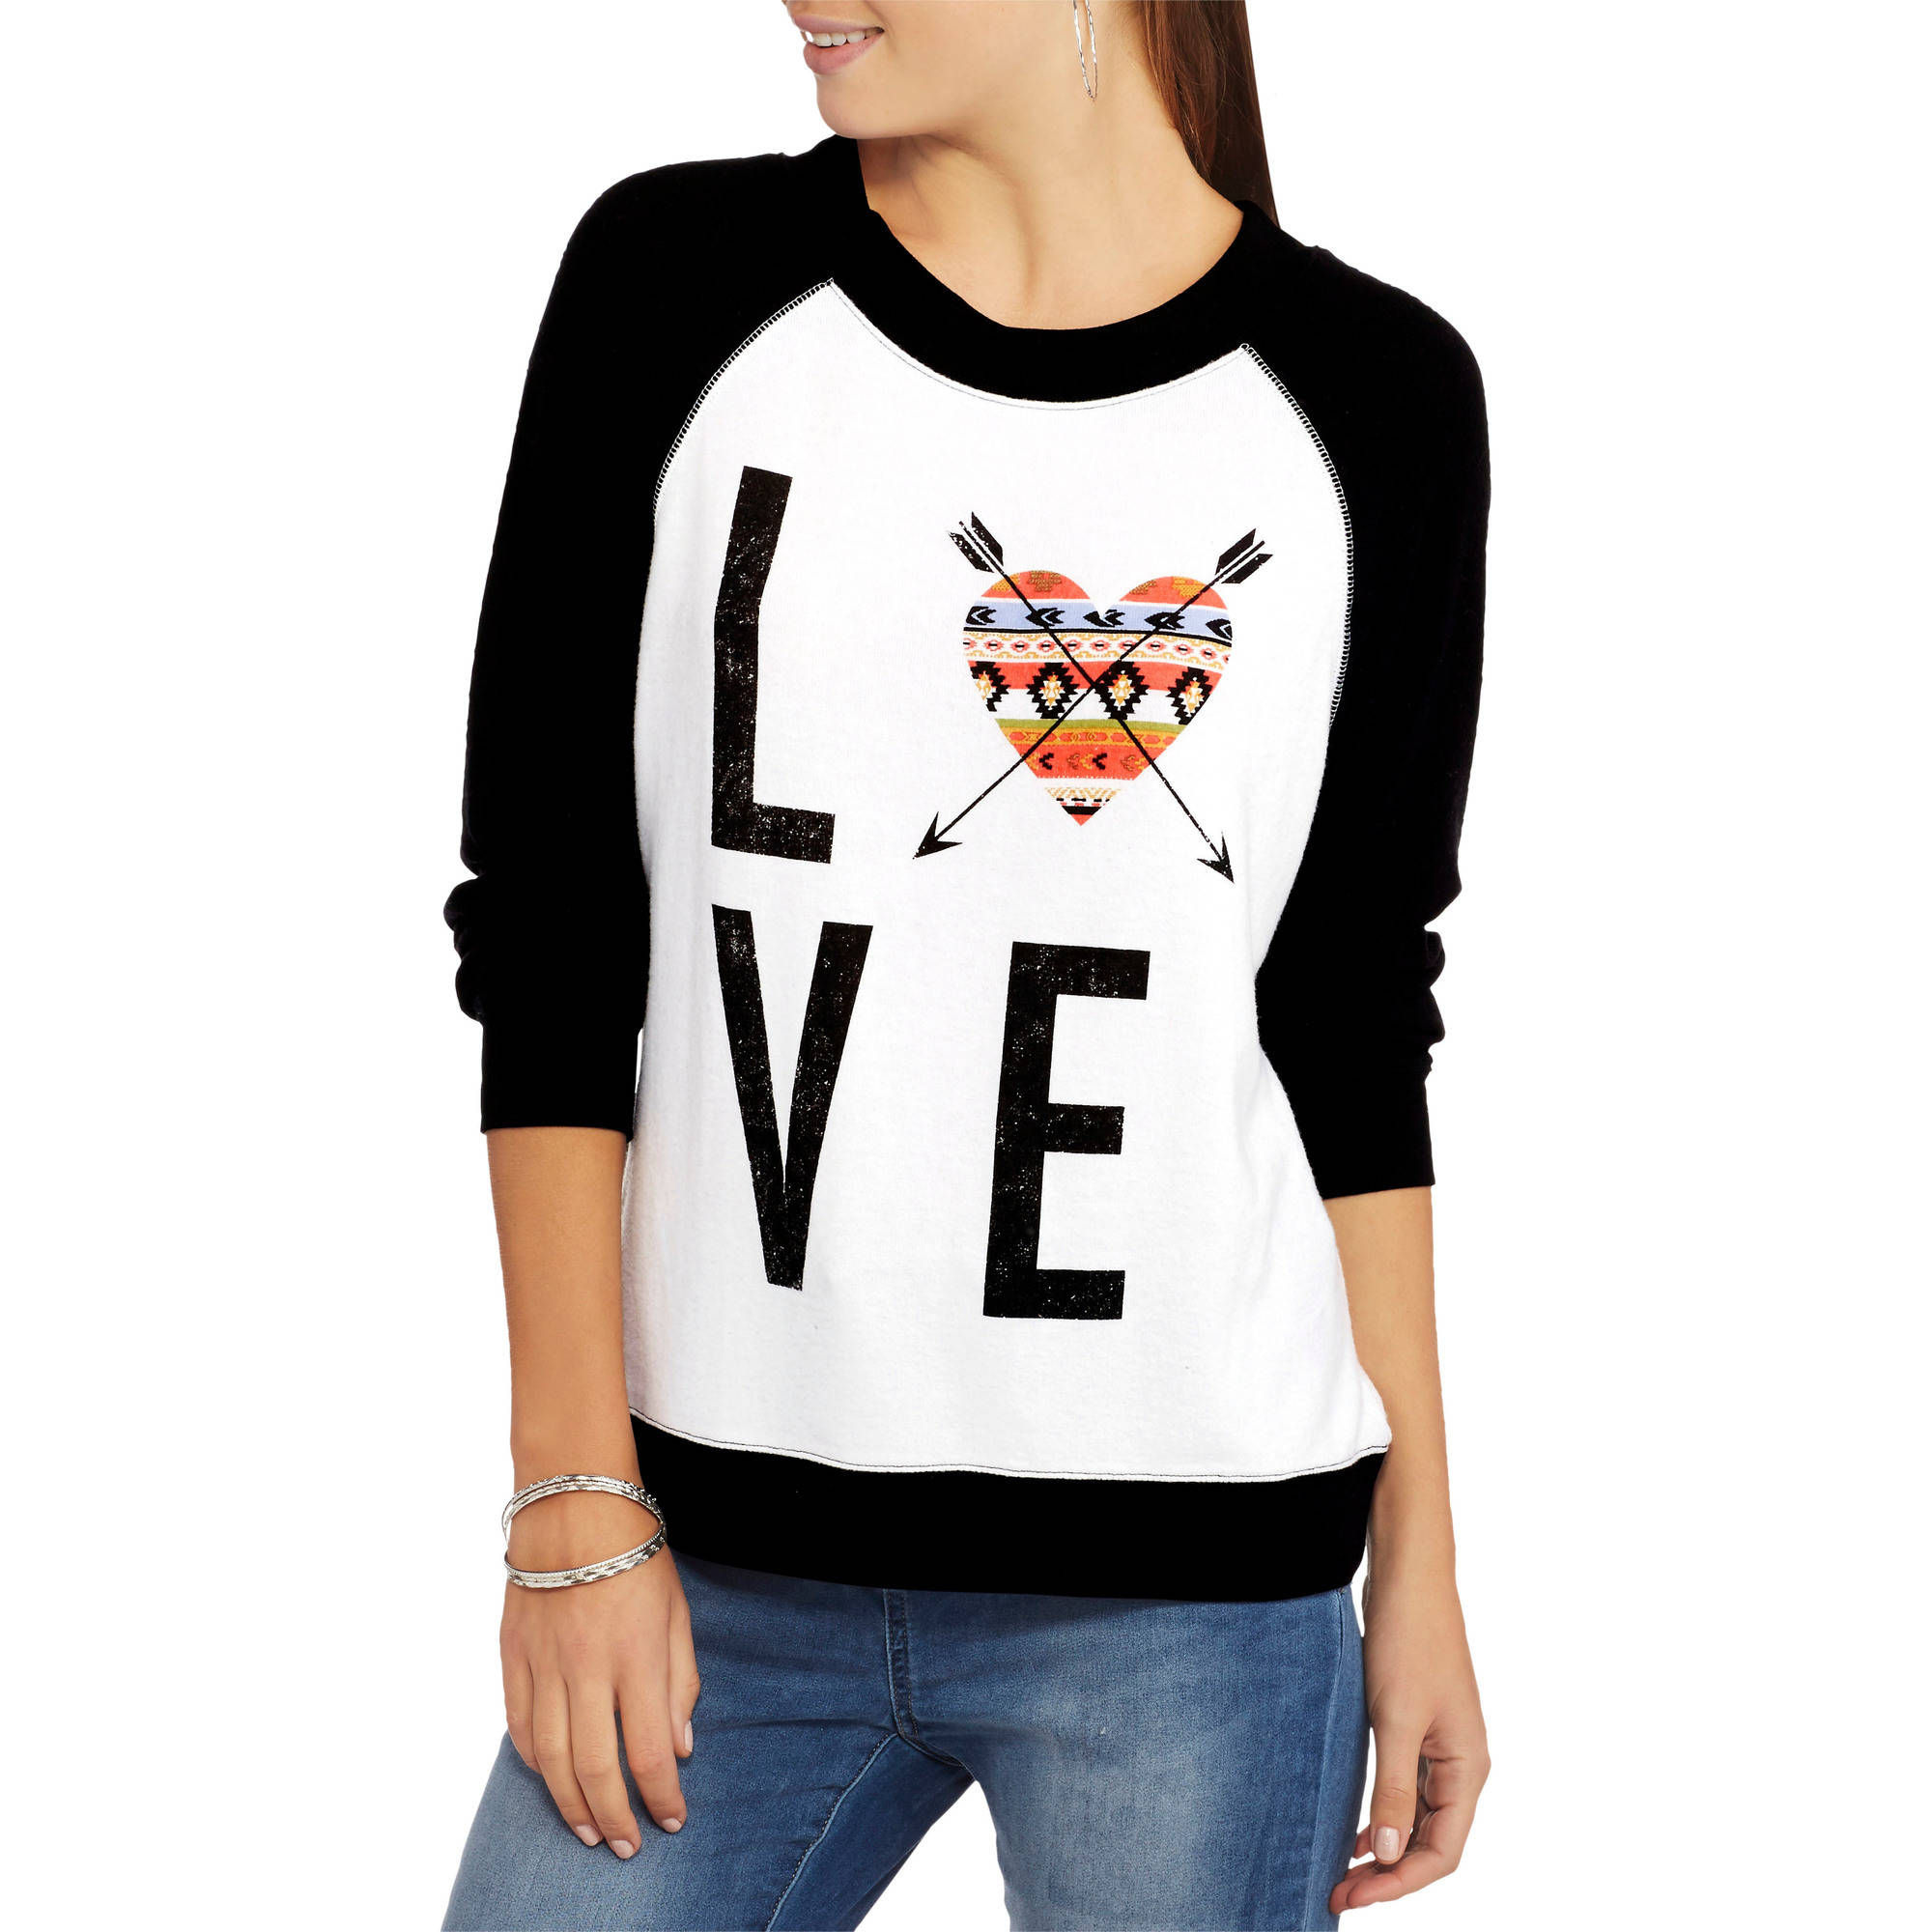 No Boundaries Juniors' Cozy Raglan Graphic Pullover Sweatshirt Assortment